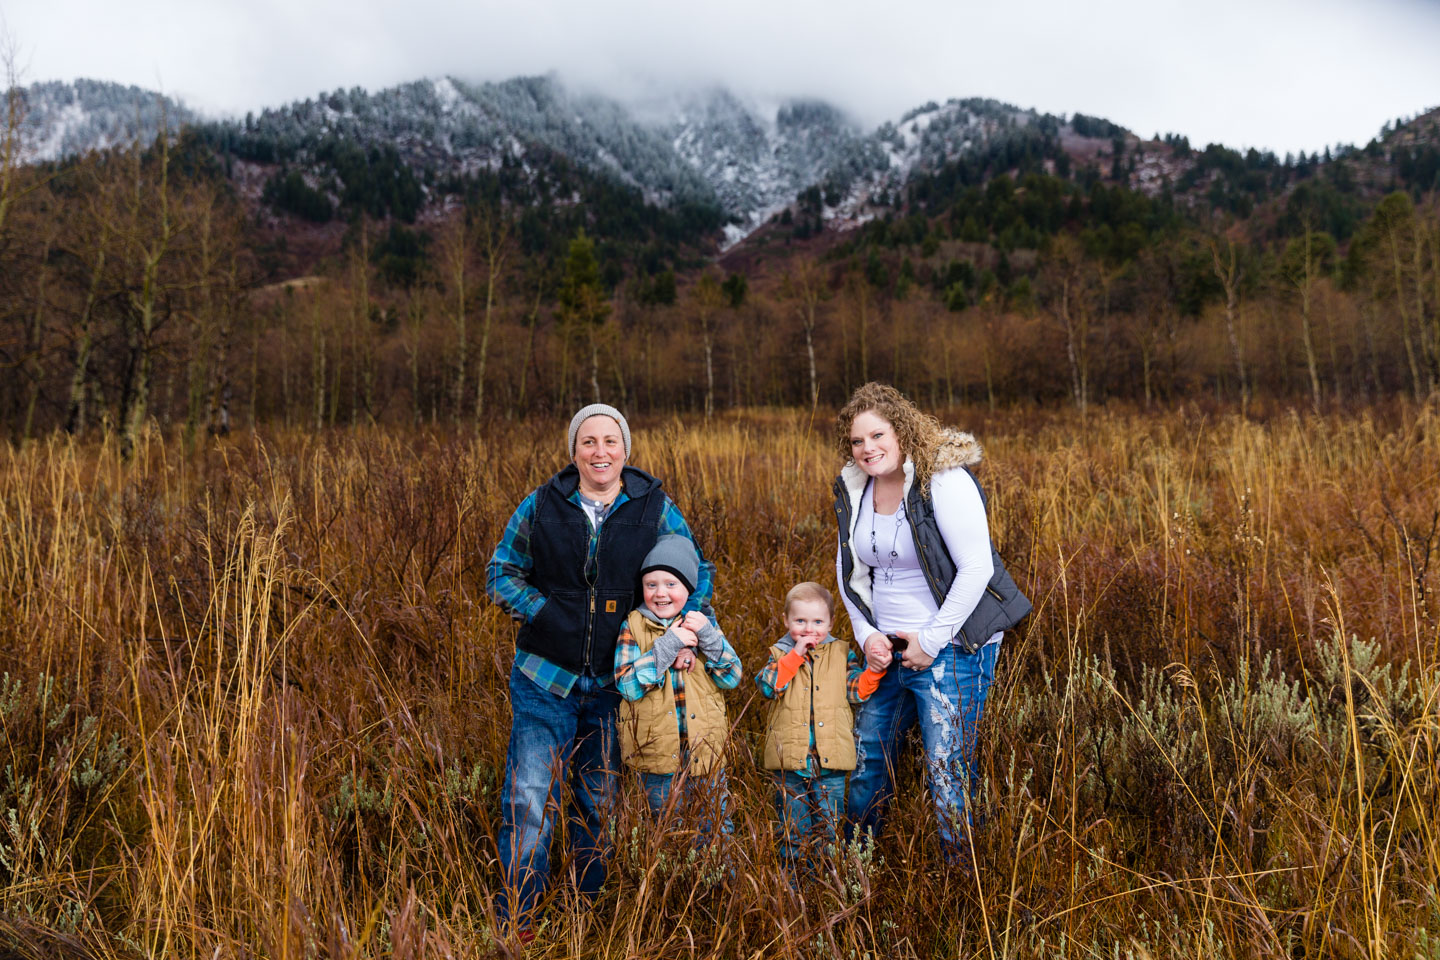 Snowcapped mountains in then background with the feel of autumn for family photos